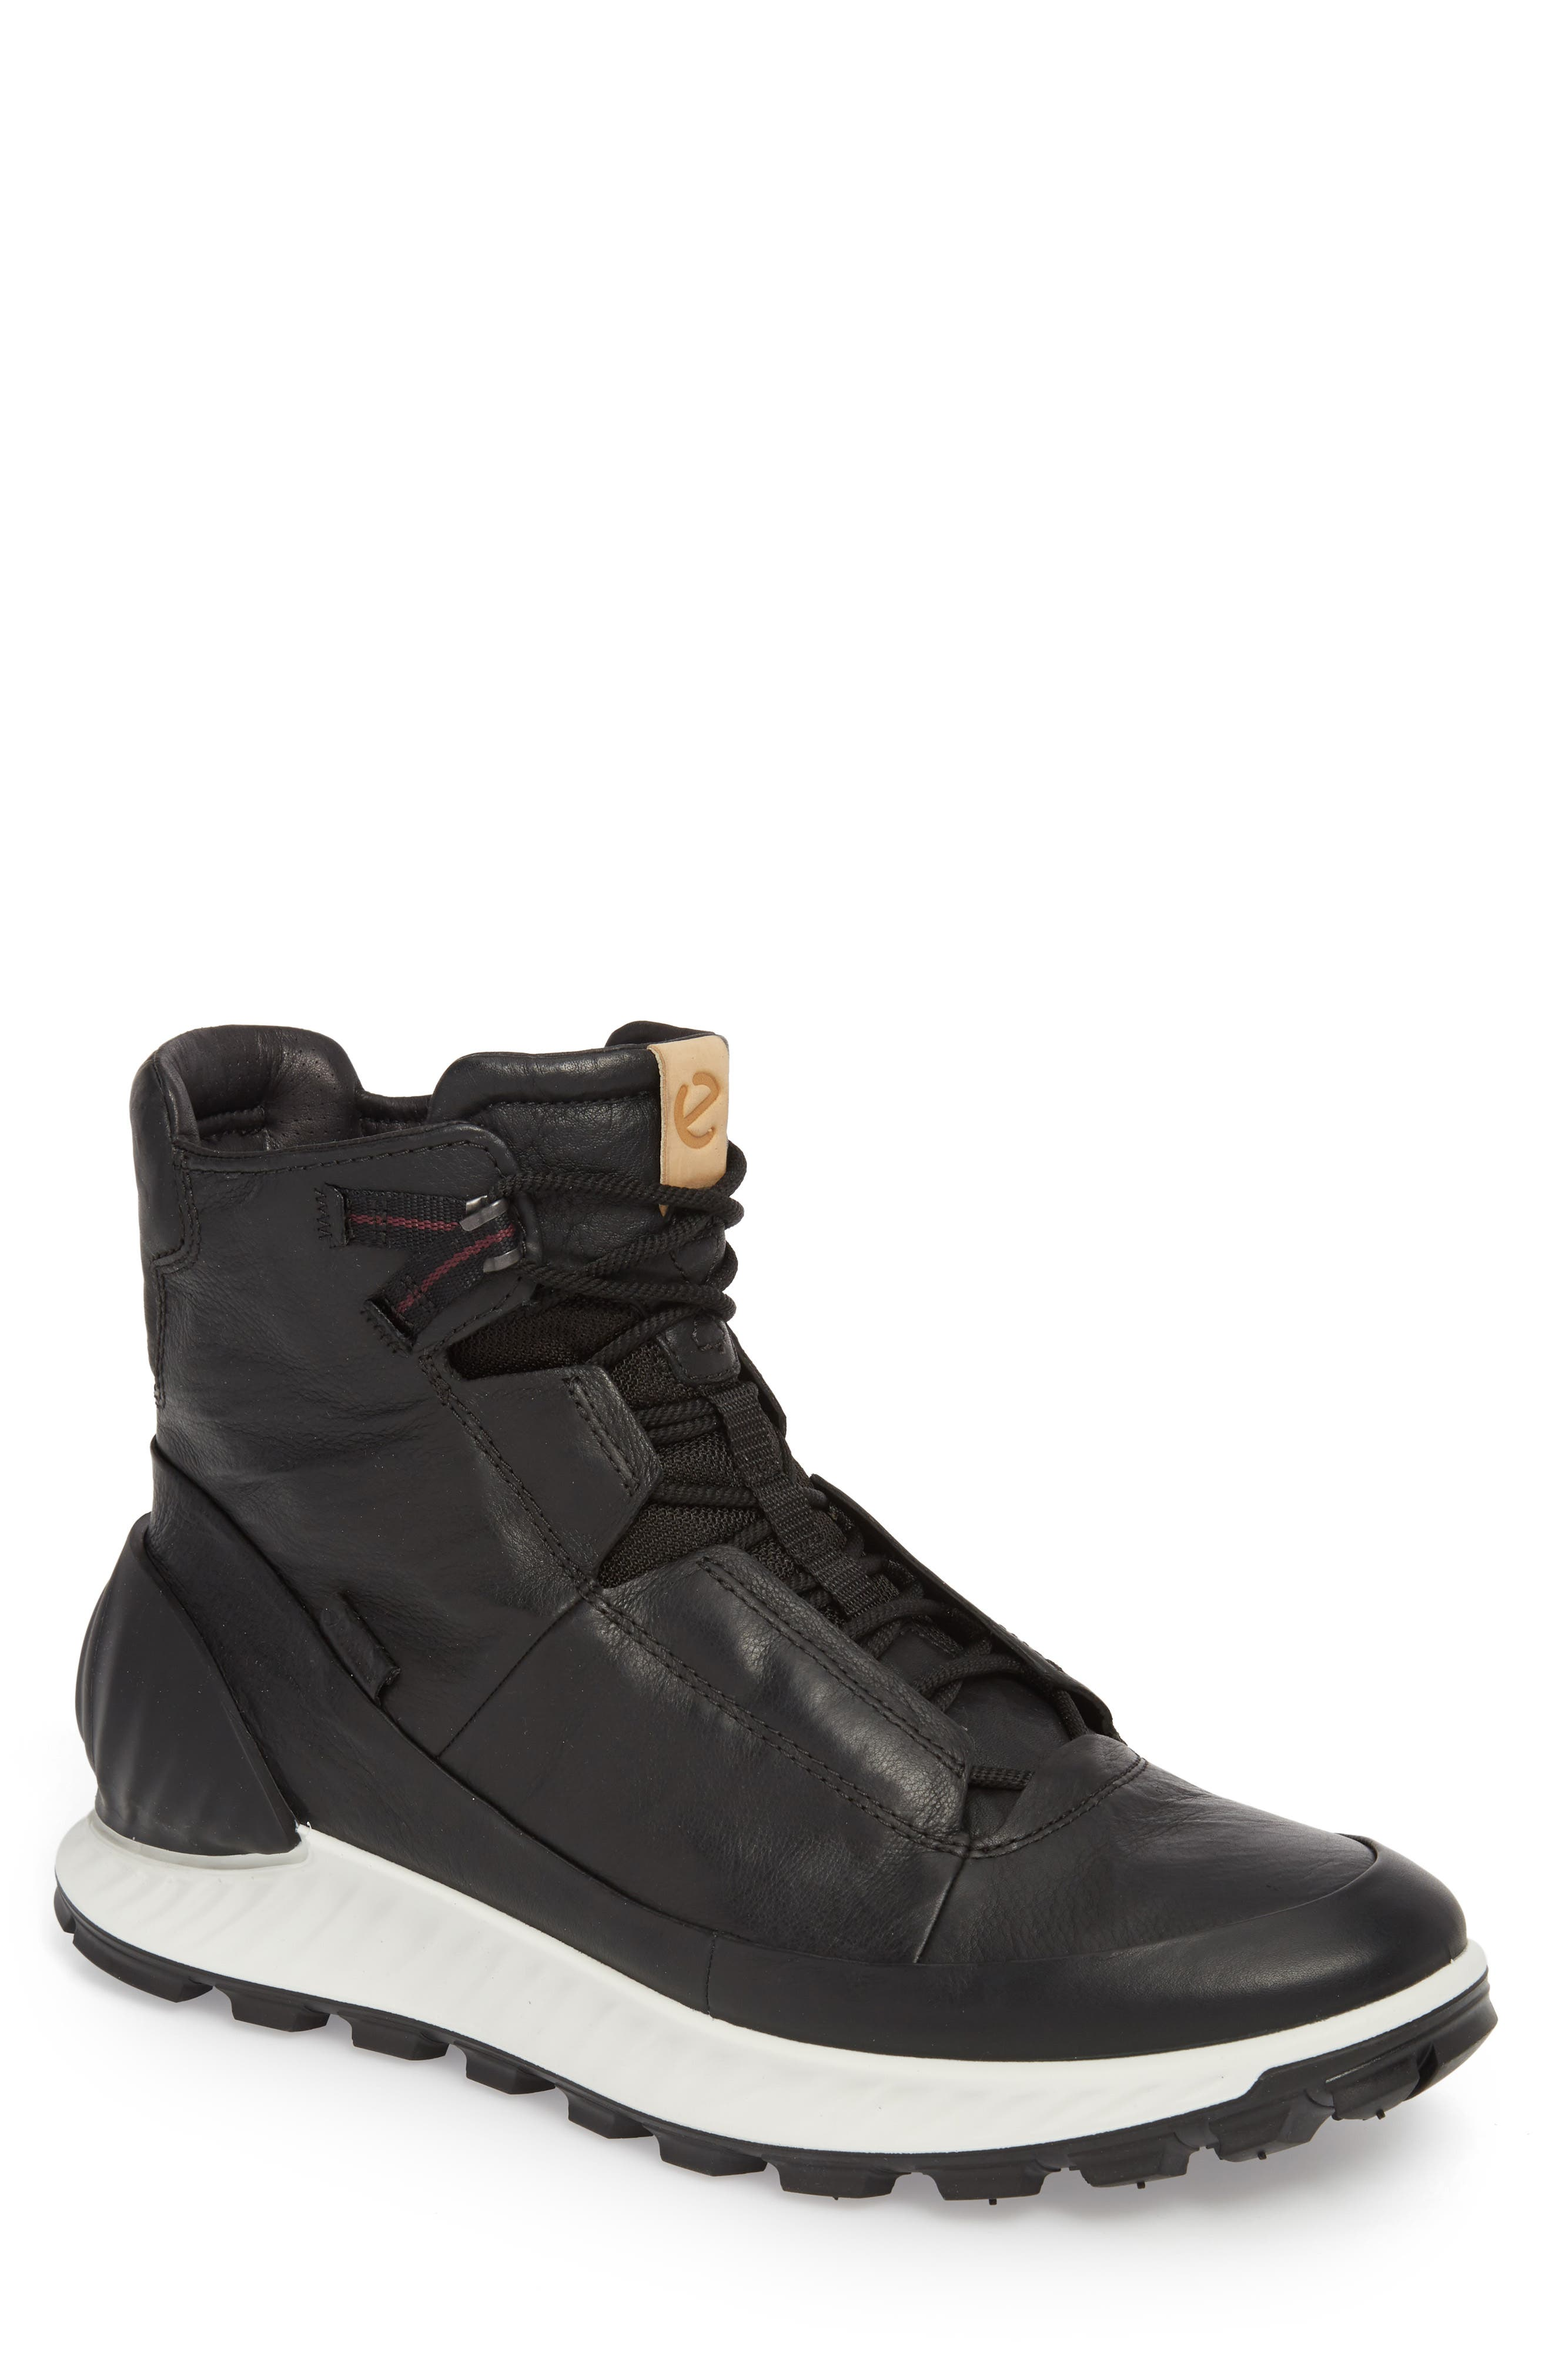 Limited Edition Exostrike Dyneema Sneaker Boot,                             Main thumbnail 1, color,                             BLACK LEATHER